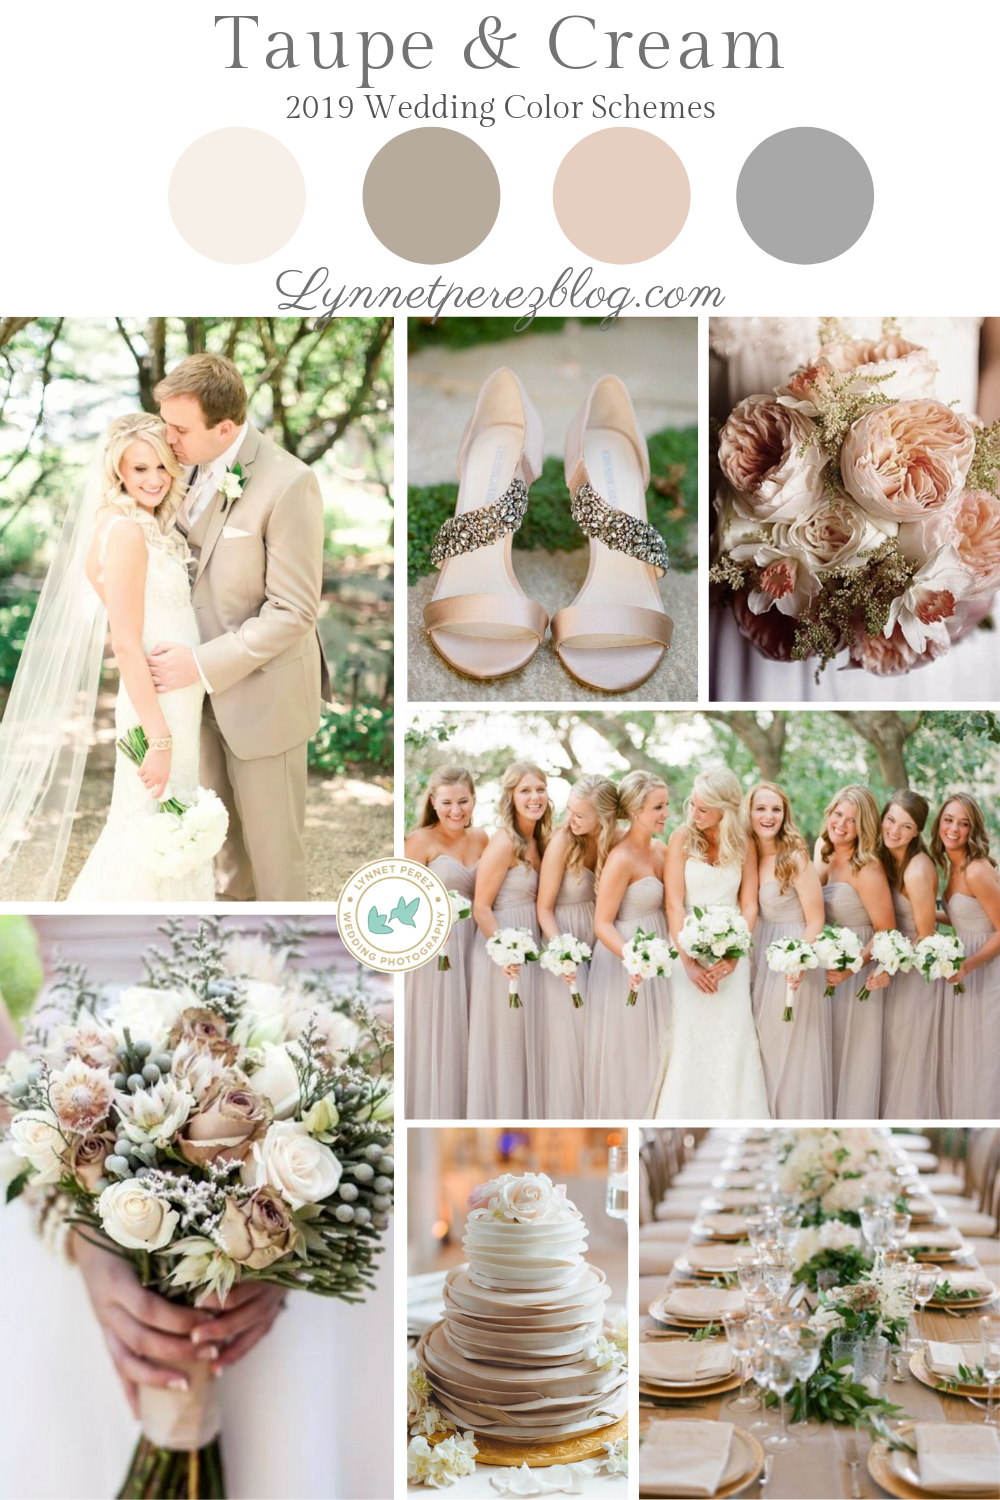 12 Top Wedding Color Schemes Palette Trends 2019 Taupe Cream Fall Colors Lynnetpe Top Wedding Colors Wedding Color Trends Neutral Wedding Colors